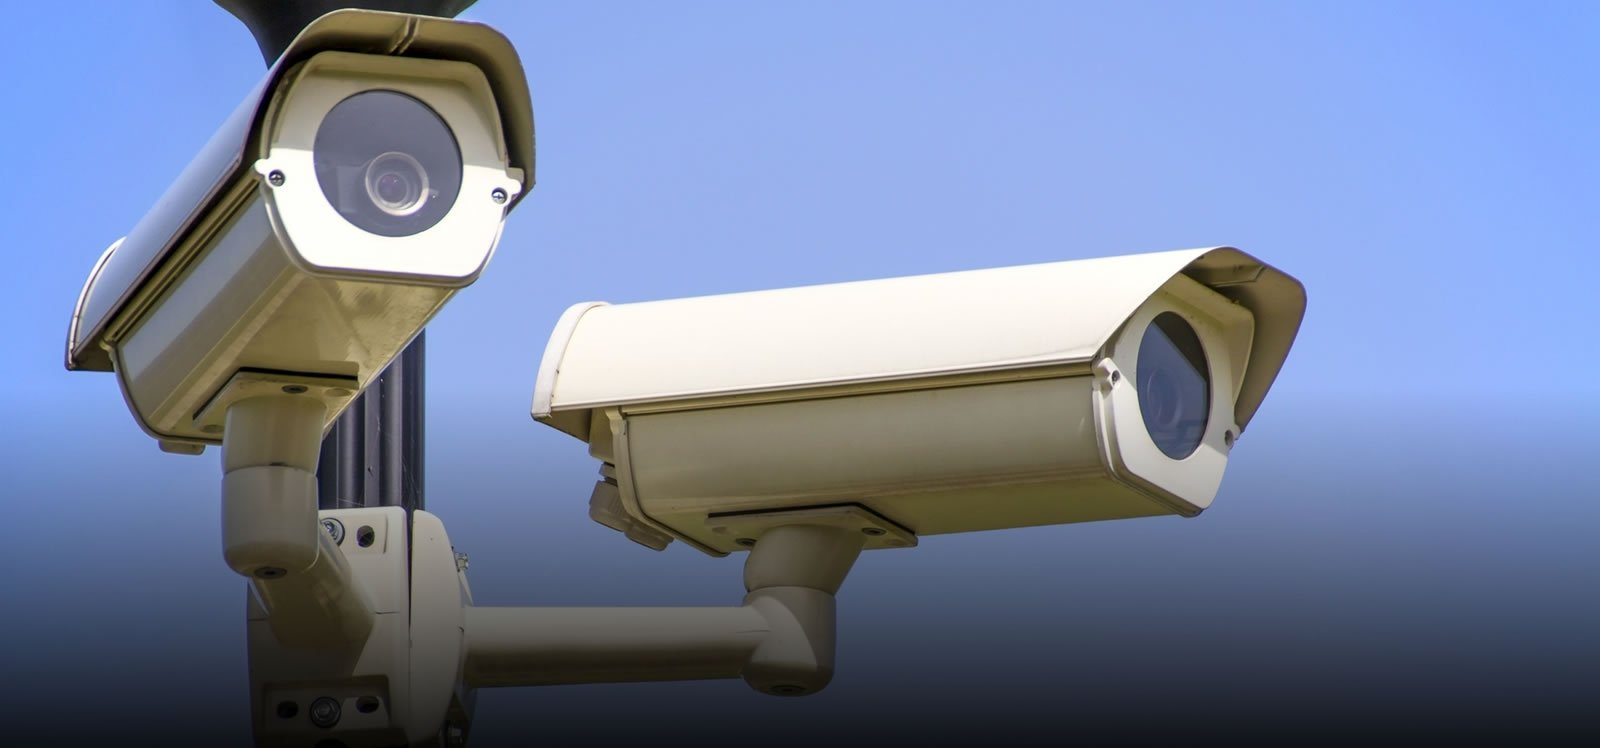 cctv specialists carlisle and cumbria